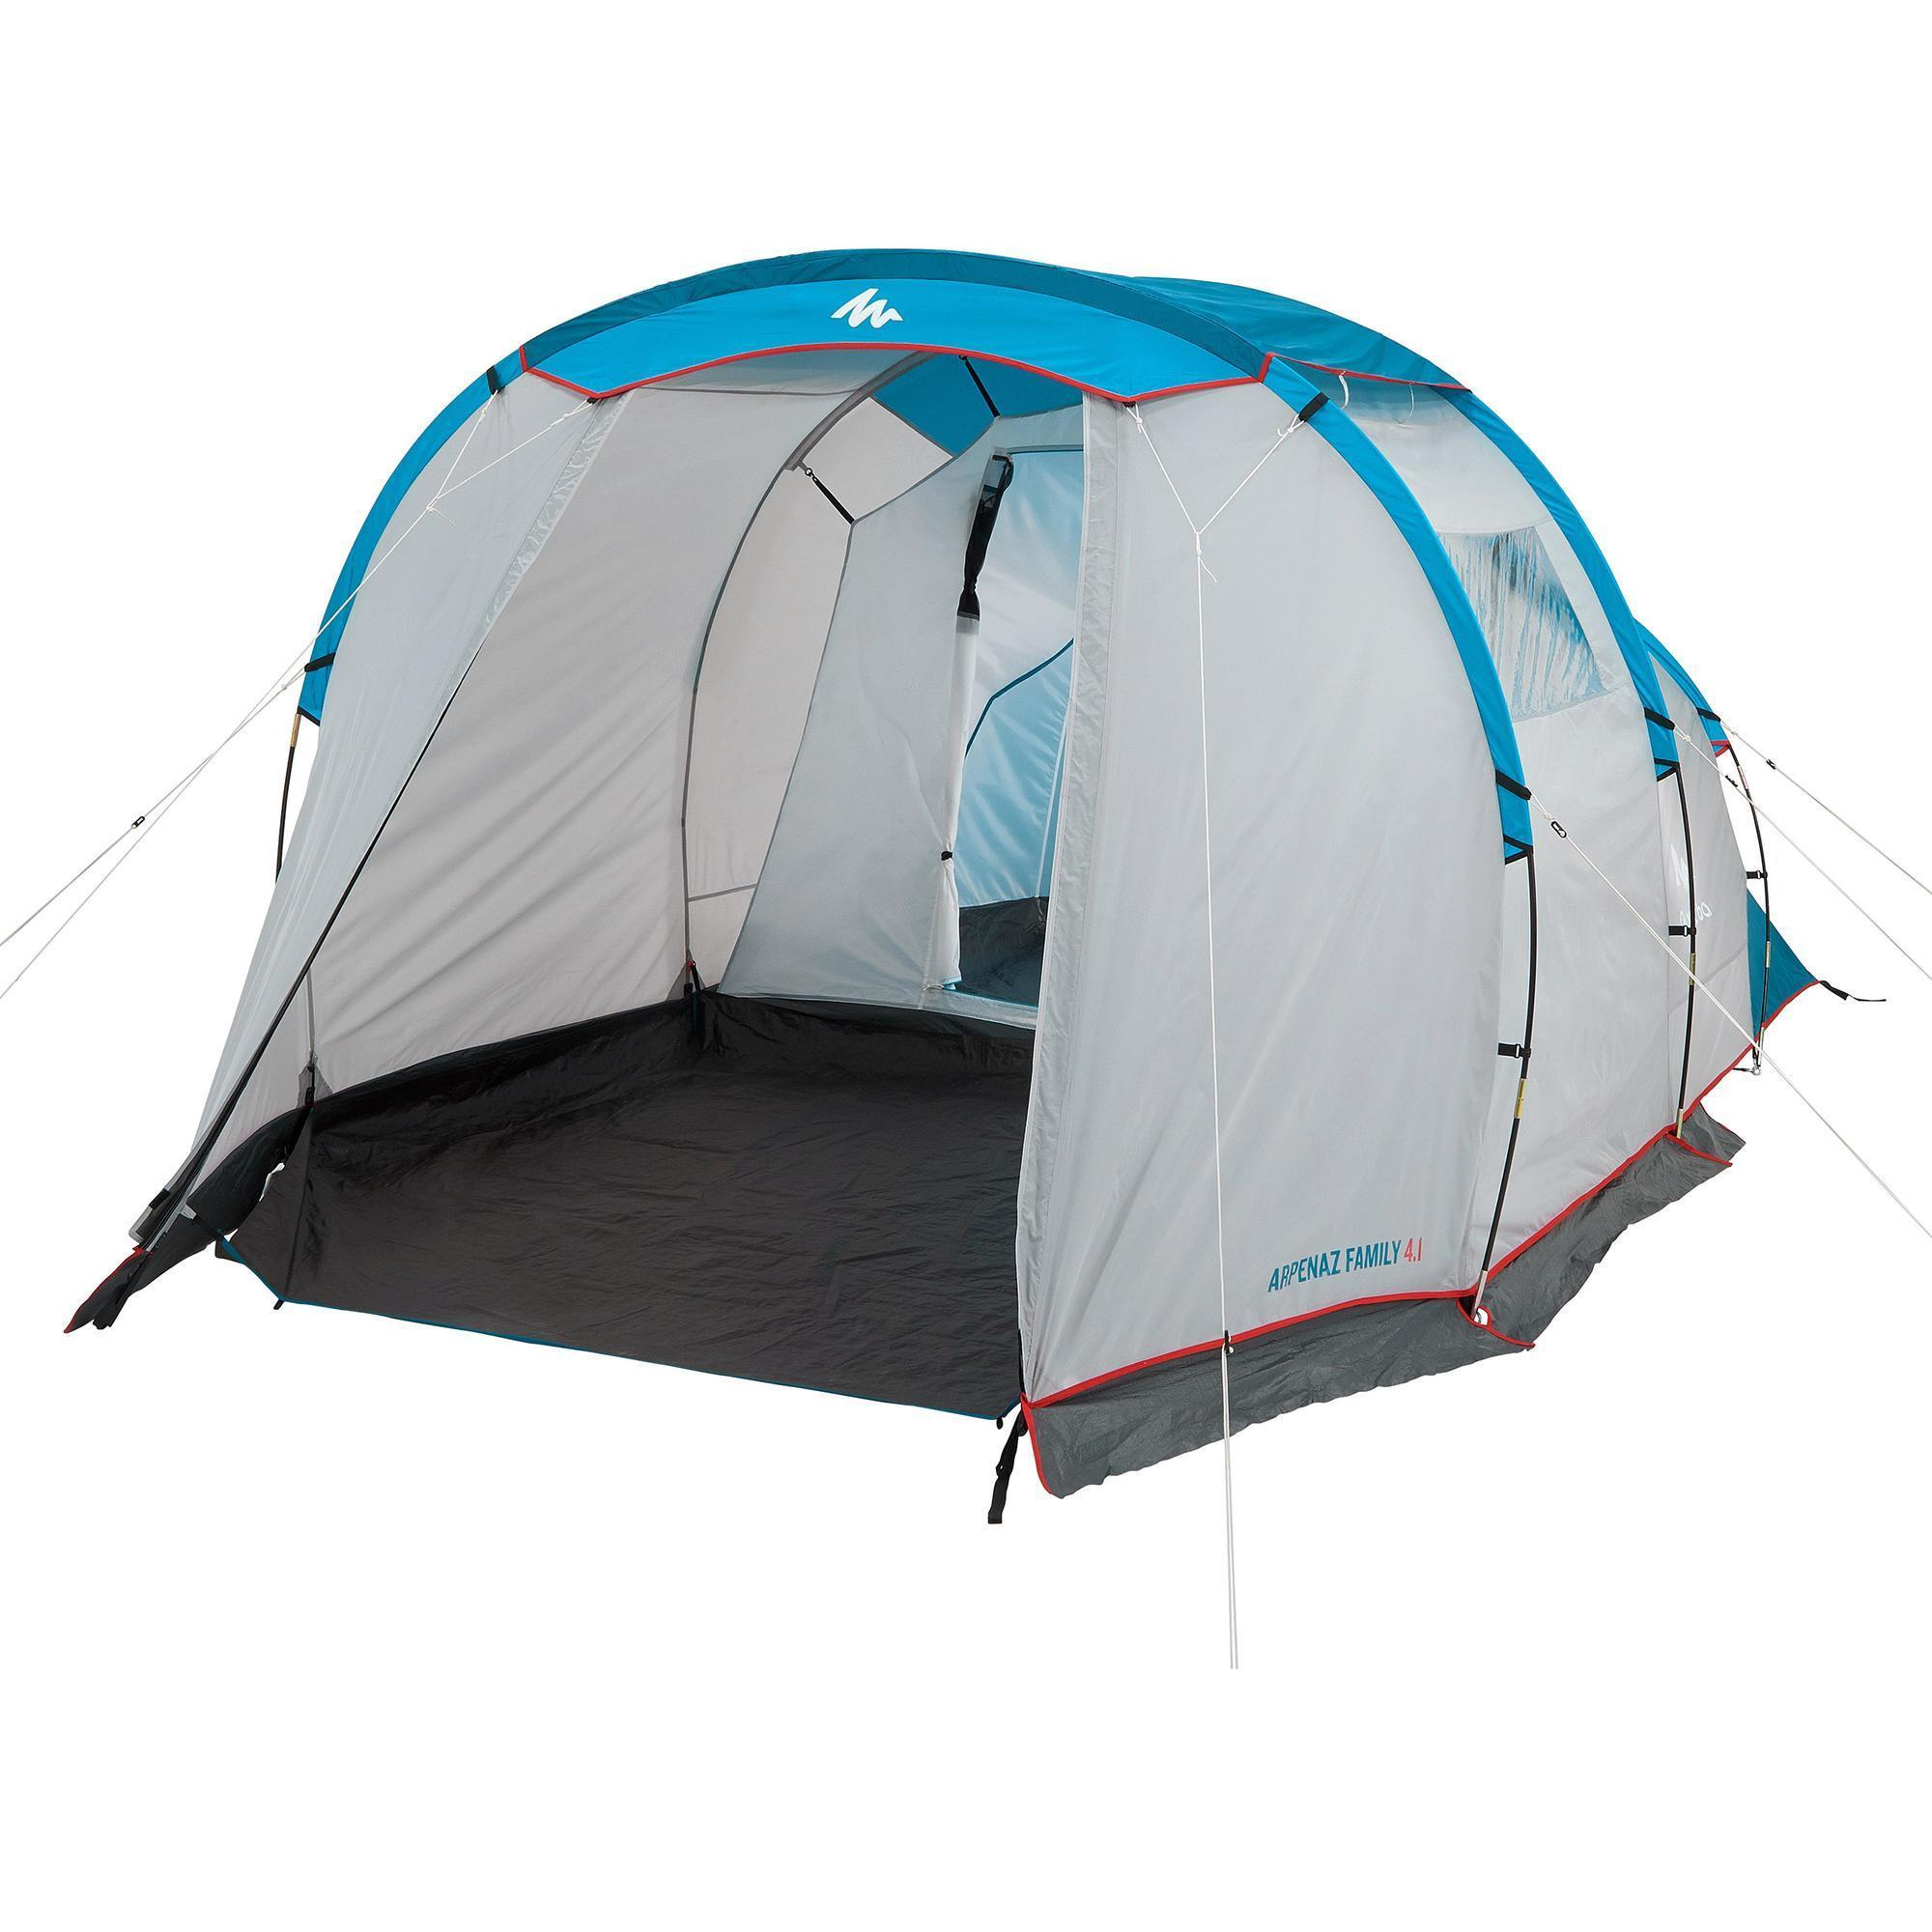 sc 1 st  Quechua & Camping tents for 4 to 8 people | Quechua